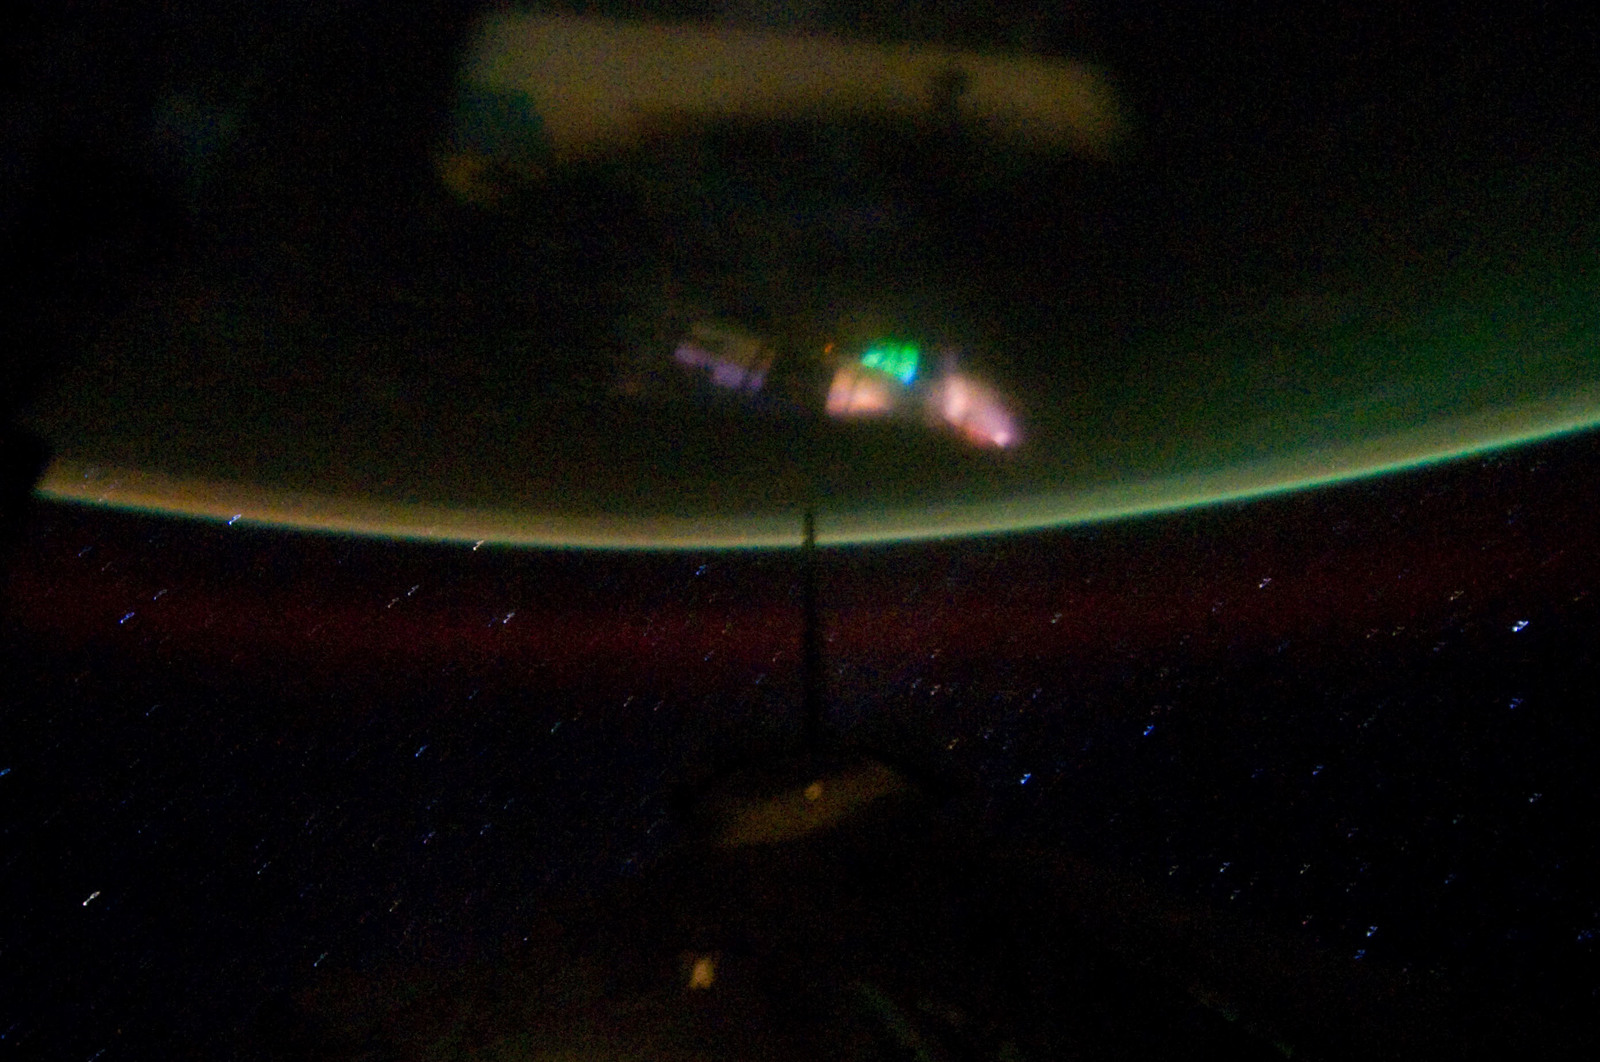 S134E012326 - STS-134 - Earth Observation taken from Aft Flight Deck Window